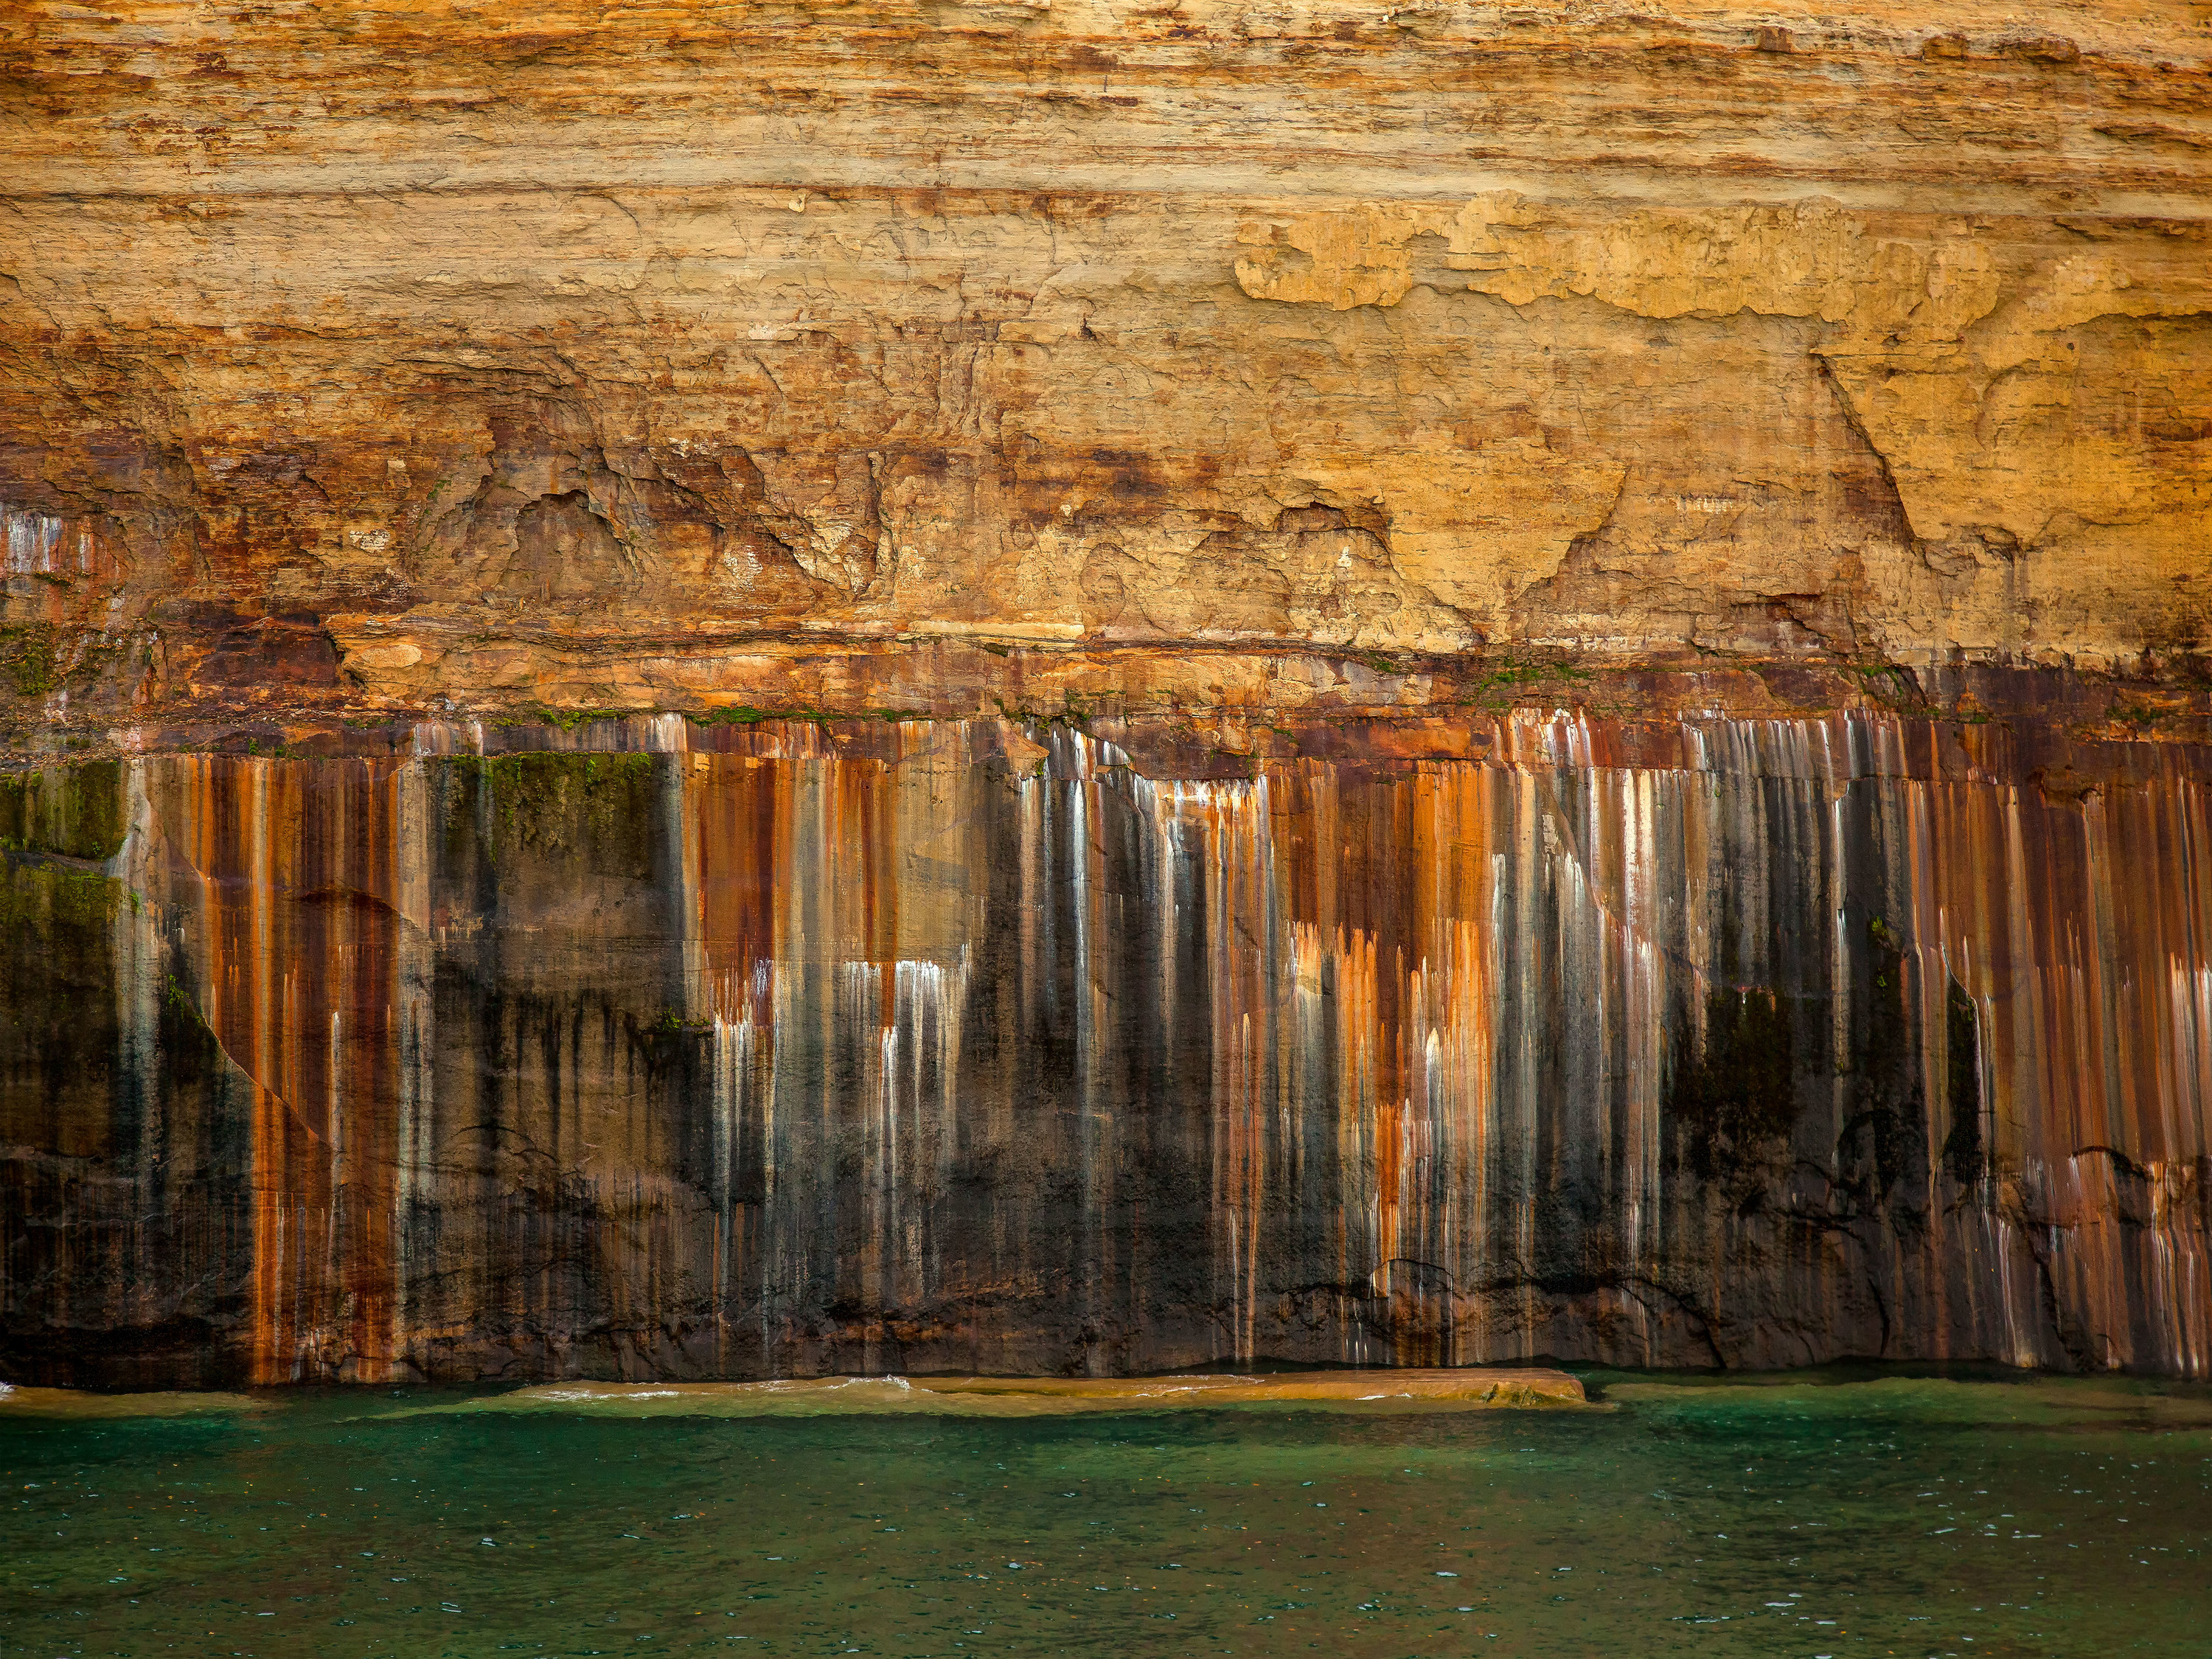 <div class='title'>           Tears of Pictured Rocks         </div>